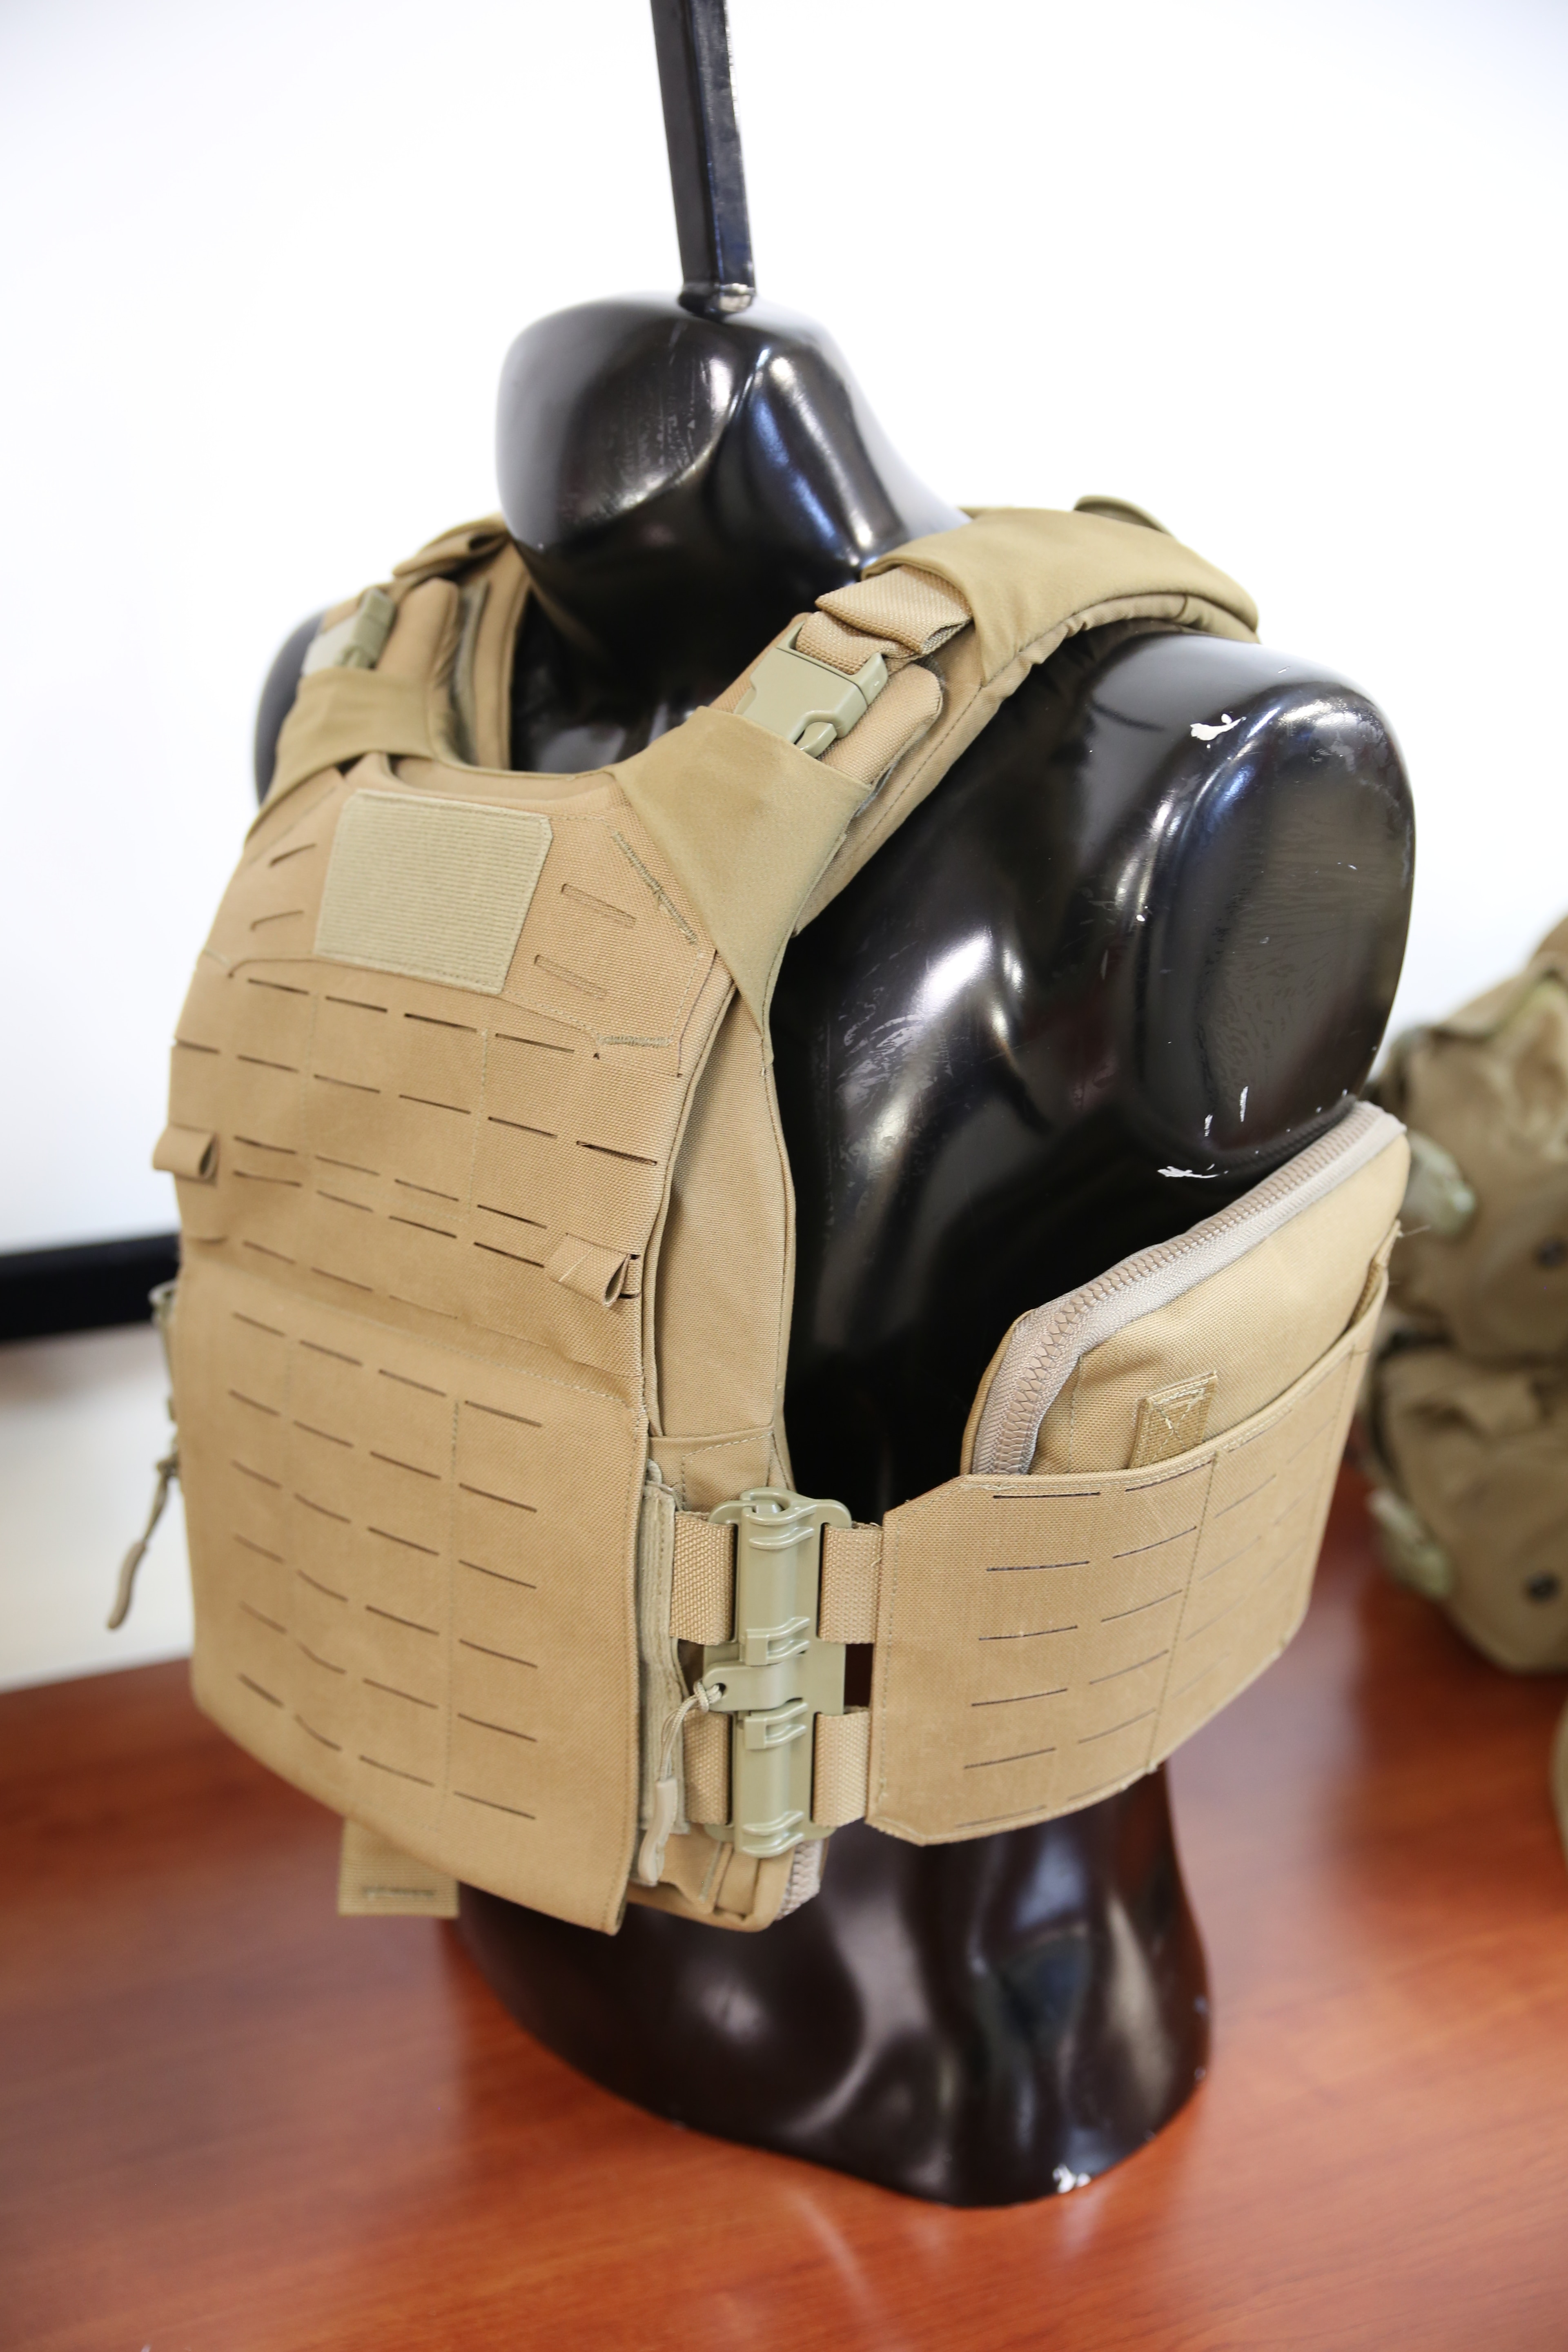 Plate Carrier Generation III prototype